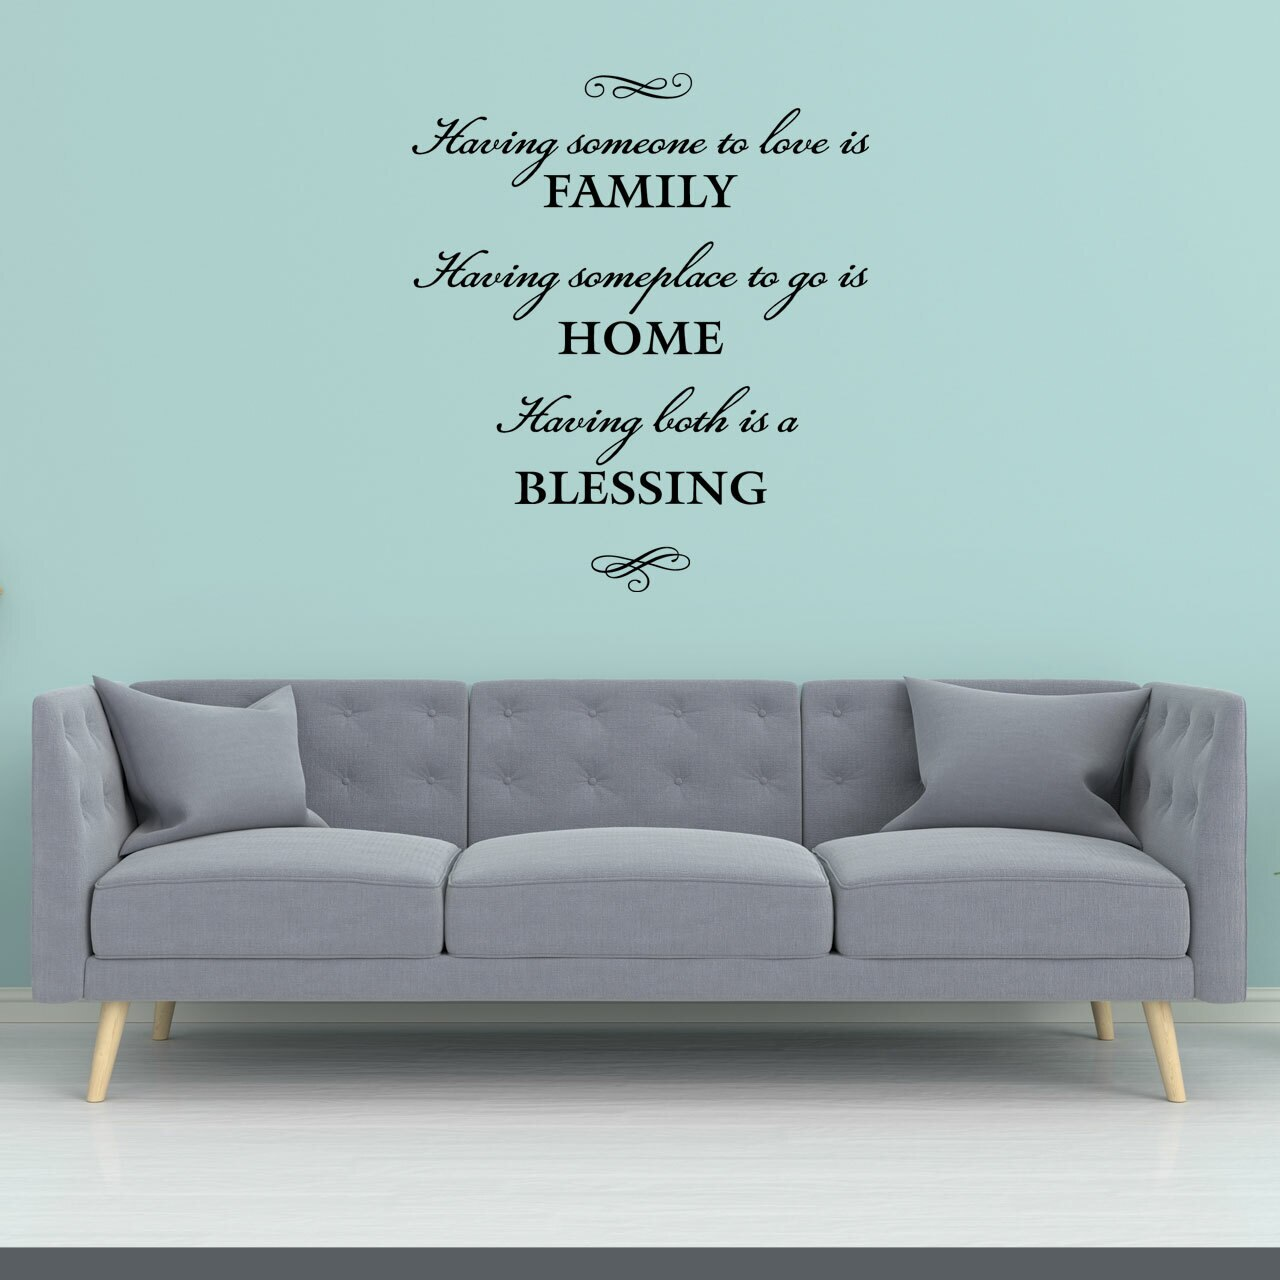 Having someone to love is family having somewhere to go is home having both is a blessing written in black vinyl lettering on a teal wall over a grey couch